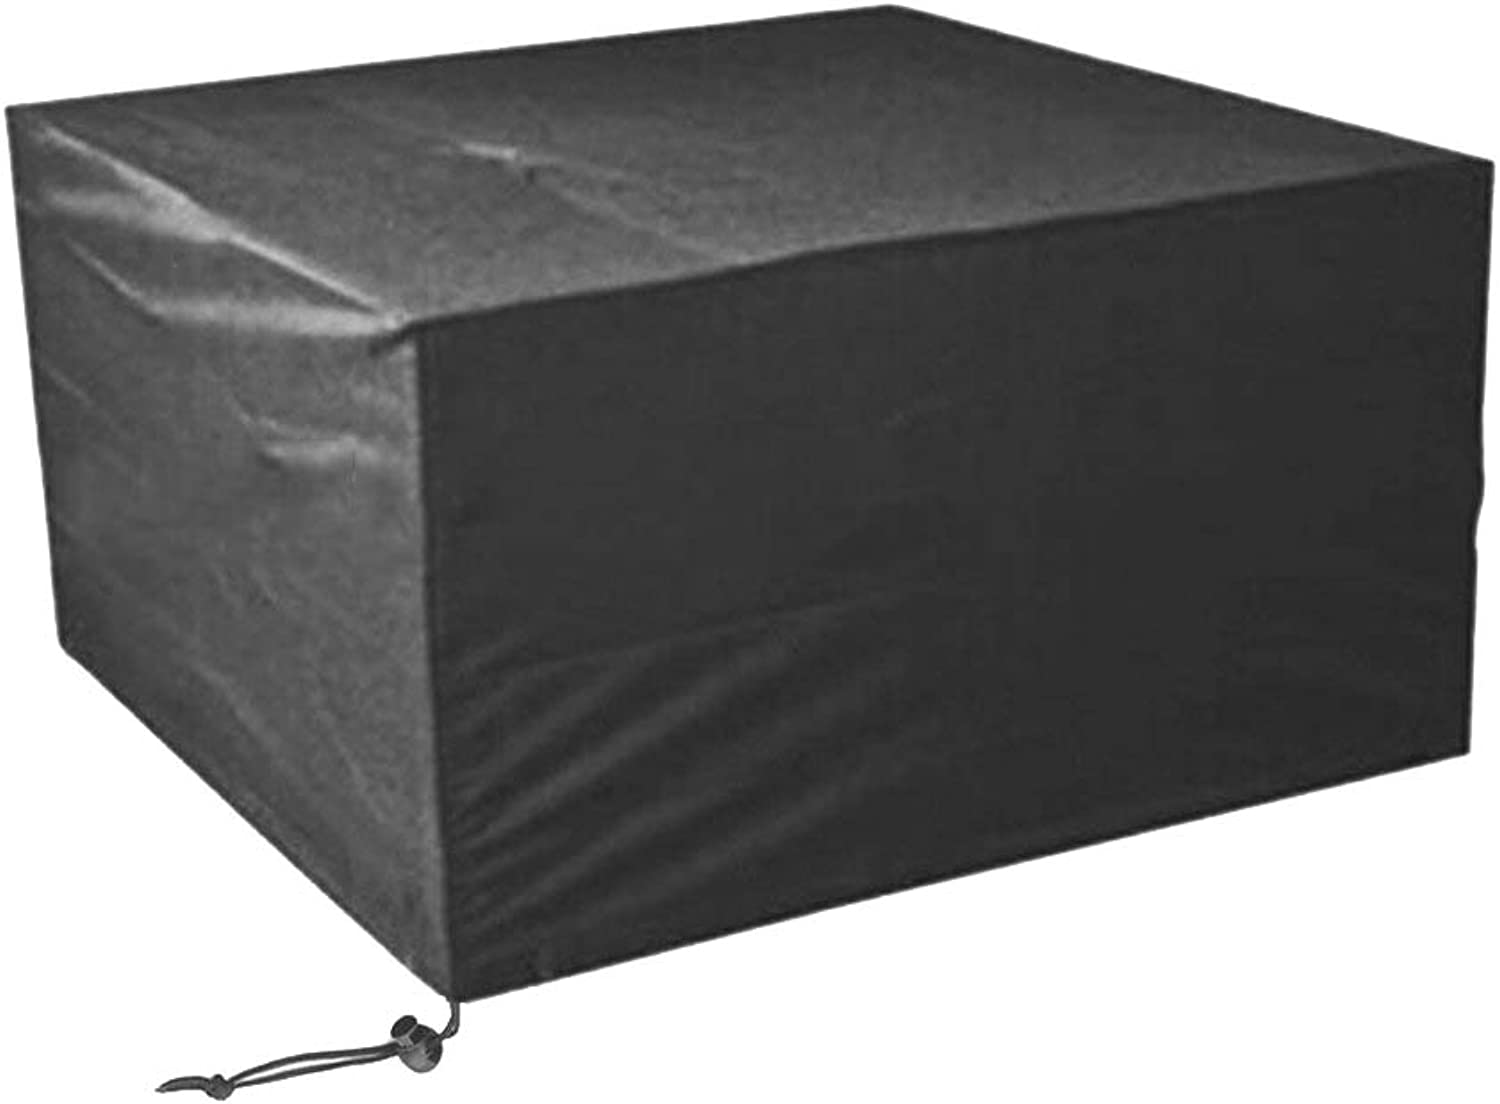 Dust GuardDust Cover Predective Cover Furniture Cover Black, Table Chair Cover Rain Cover Waterproof Sun Predection, Suitable for Outdoor Patio 420D Oxford Cloth,120  120  74cm